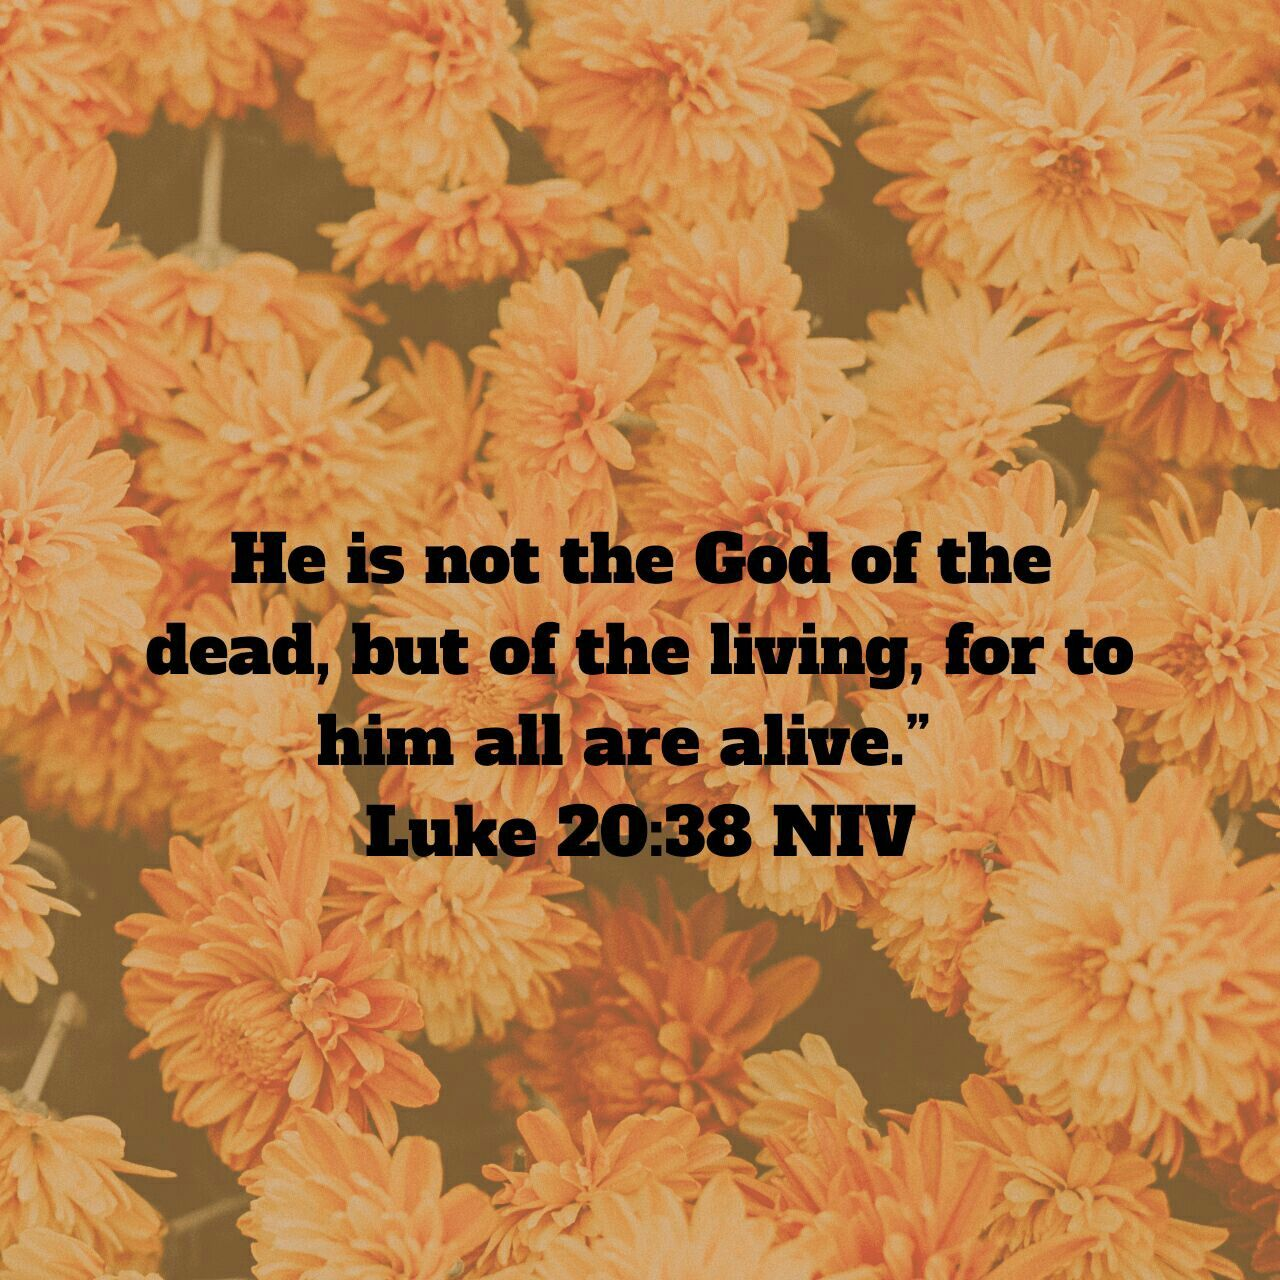 Let us prepare our hearts and minds for the upcoming season of celebration of eternal life, for Jesus dies and rises again for man...Thanks be to Almighty God!